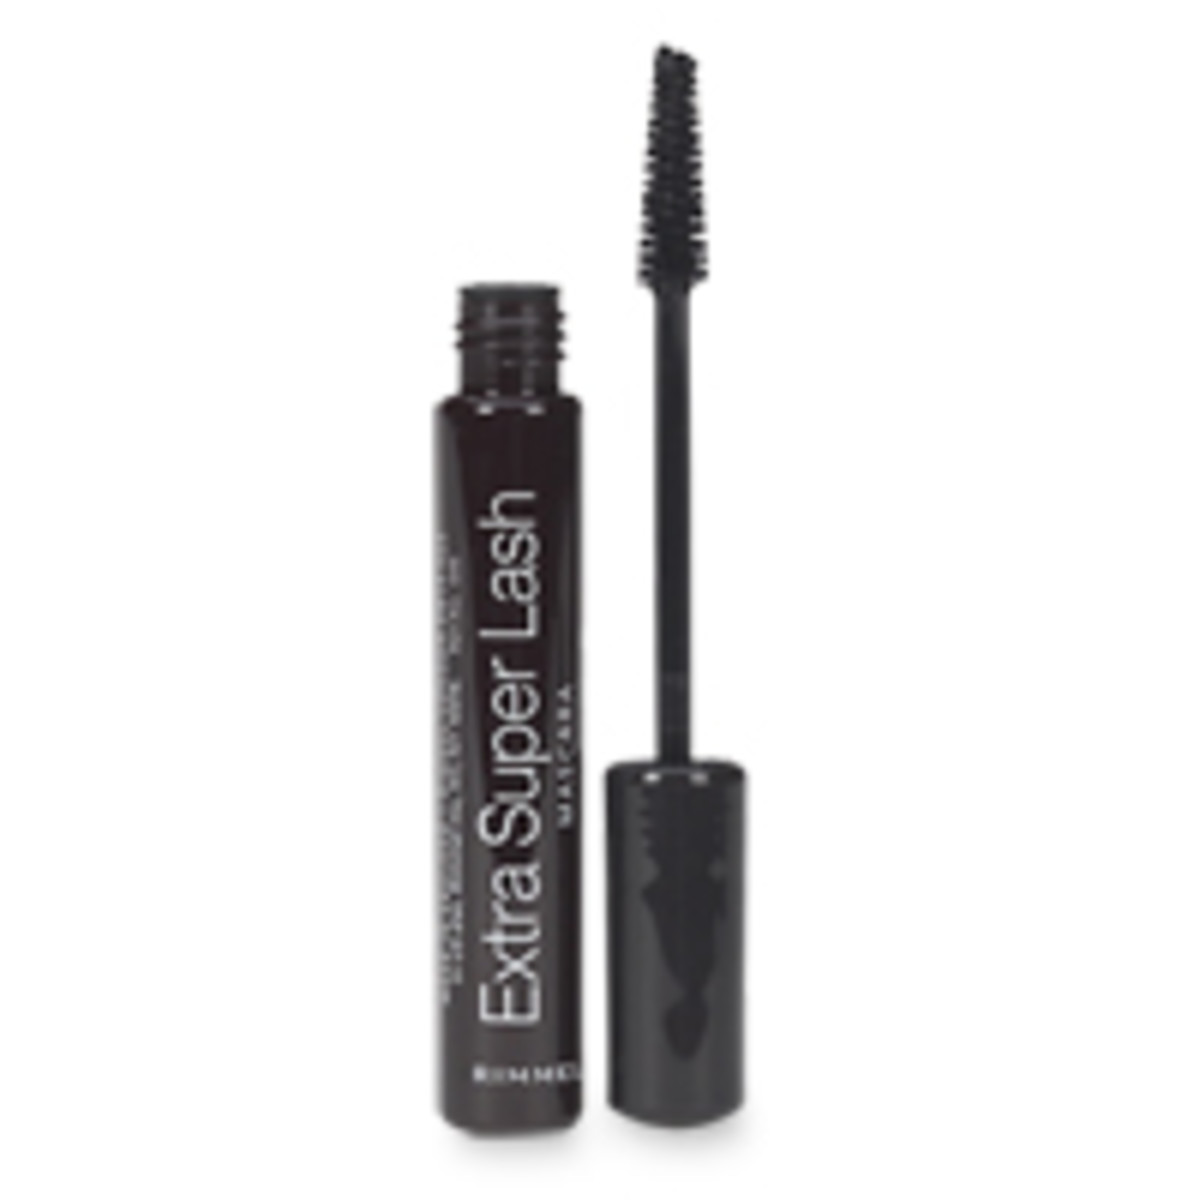 Rimmel Extra Super Lash is a marvelous curler.